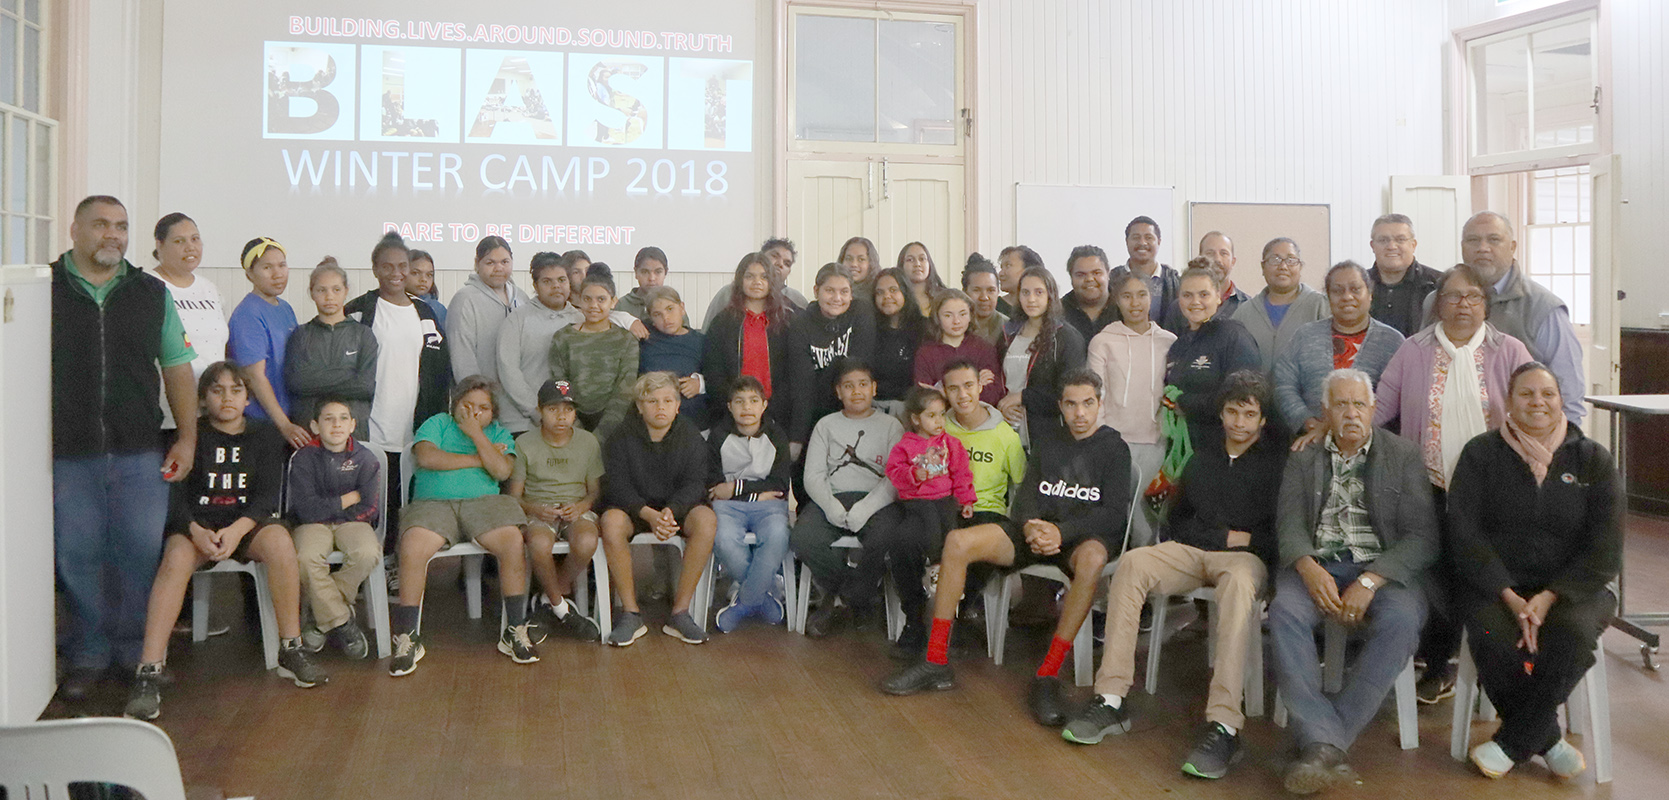 Campers, staff and speakers for B.L.A.S.T. Winter Camp 2018